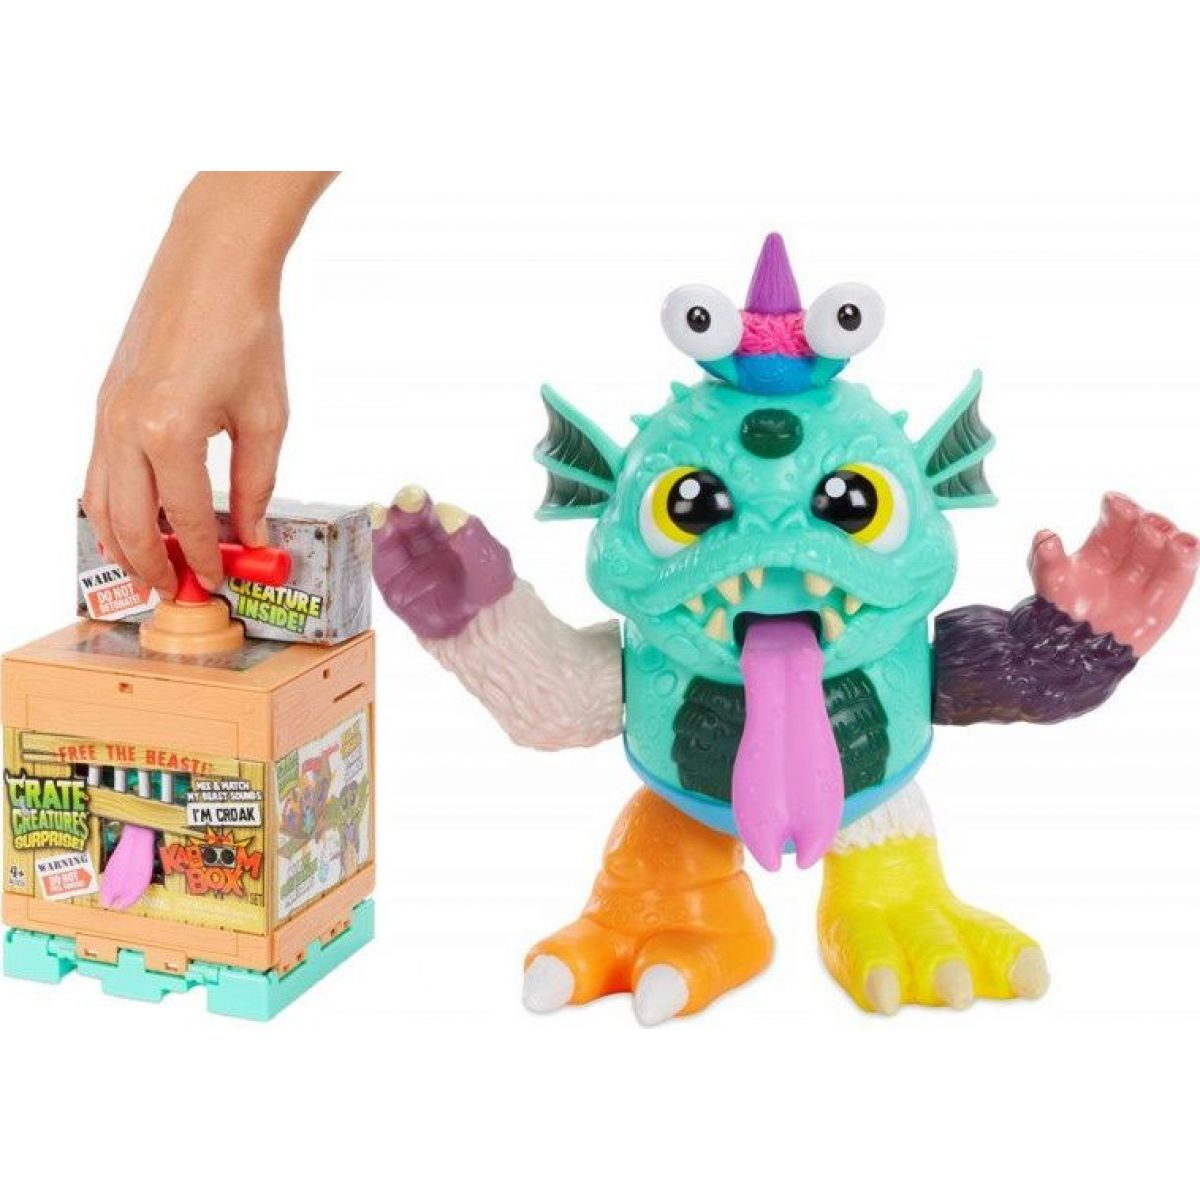 Crate Creatures Surprise KaBoom Box Croak